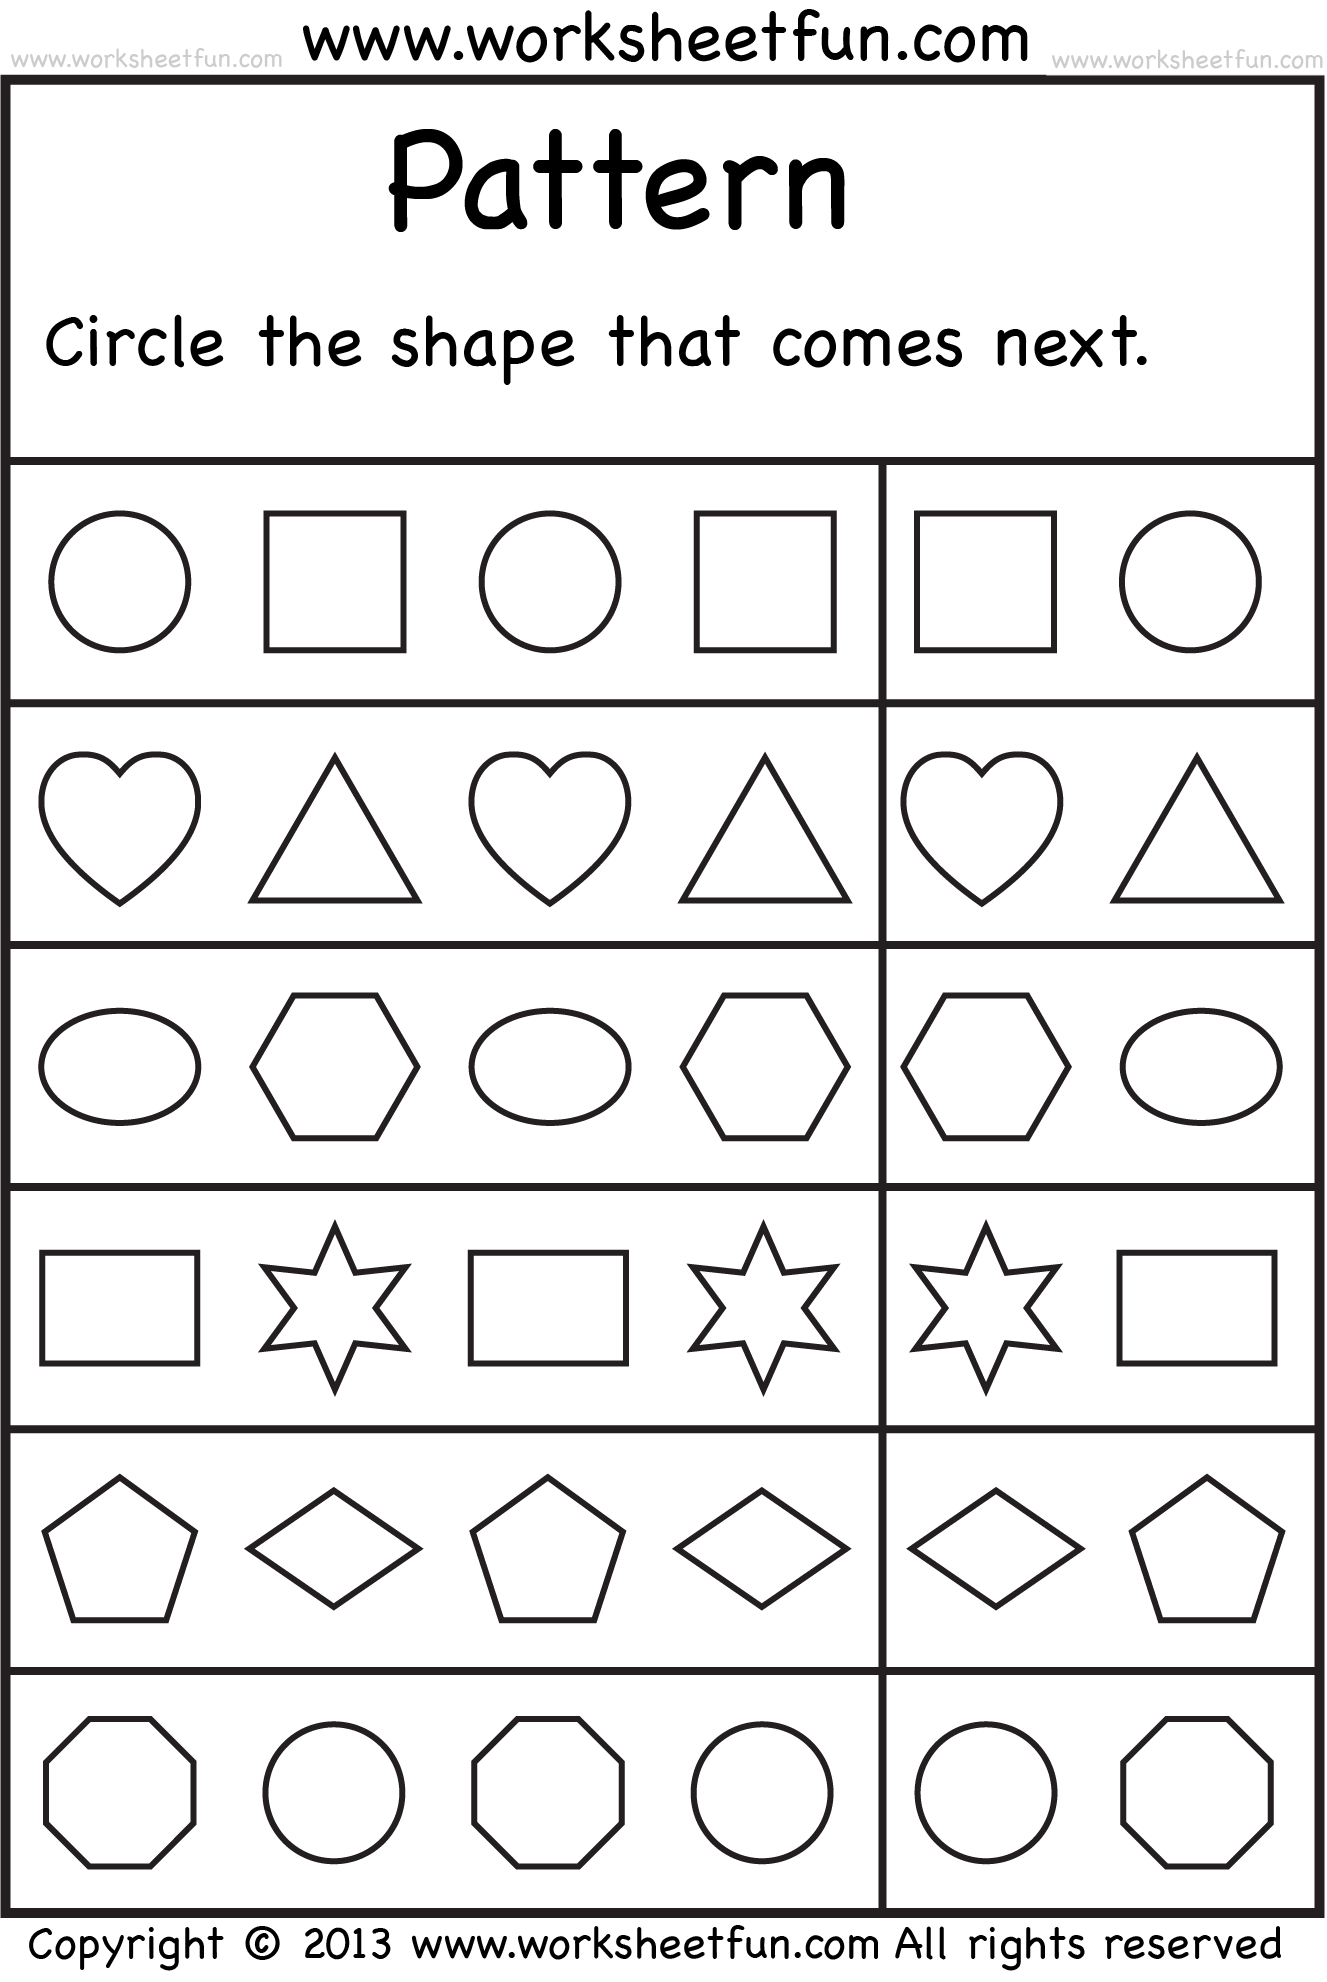 Proatmealus  Pleasant  Images About School Worksheets On Pinterest  Number Words  With Exquisite  Images About School Worksheets On Pinterest  Number Words Alphabet Worksheets And Free Printable Kindergarten Worksheets With Amazing Simple Machines Printable Worksheets Also Science Fair Worksheets In Addition Pre Kindergarten Worksheets Free And Math Worksheets For Th Grade To Print As Well As Mad Lib Printable Worksheets Additionally Kindergarten Money Worksheet From Pinterestcom With Proatmealus  Exquisite  Images About School Worksheets On Pinterest  Number Words  With Amazing  Images About School Worksheets On Pinterest  Number Words Alphabet Worksheets And Free Printable Kindergarten Worksheets And Pleasant Simple Machines Printable Worksheets Also Science Fair Worksheets In Addition Pre Kindergarten Worksheets Free From Pinterestcom